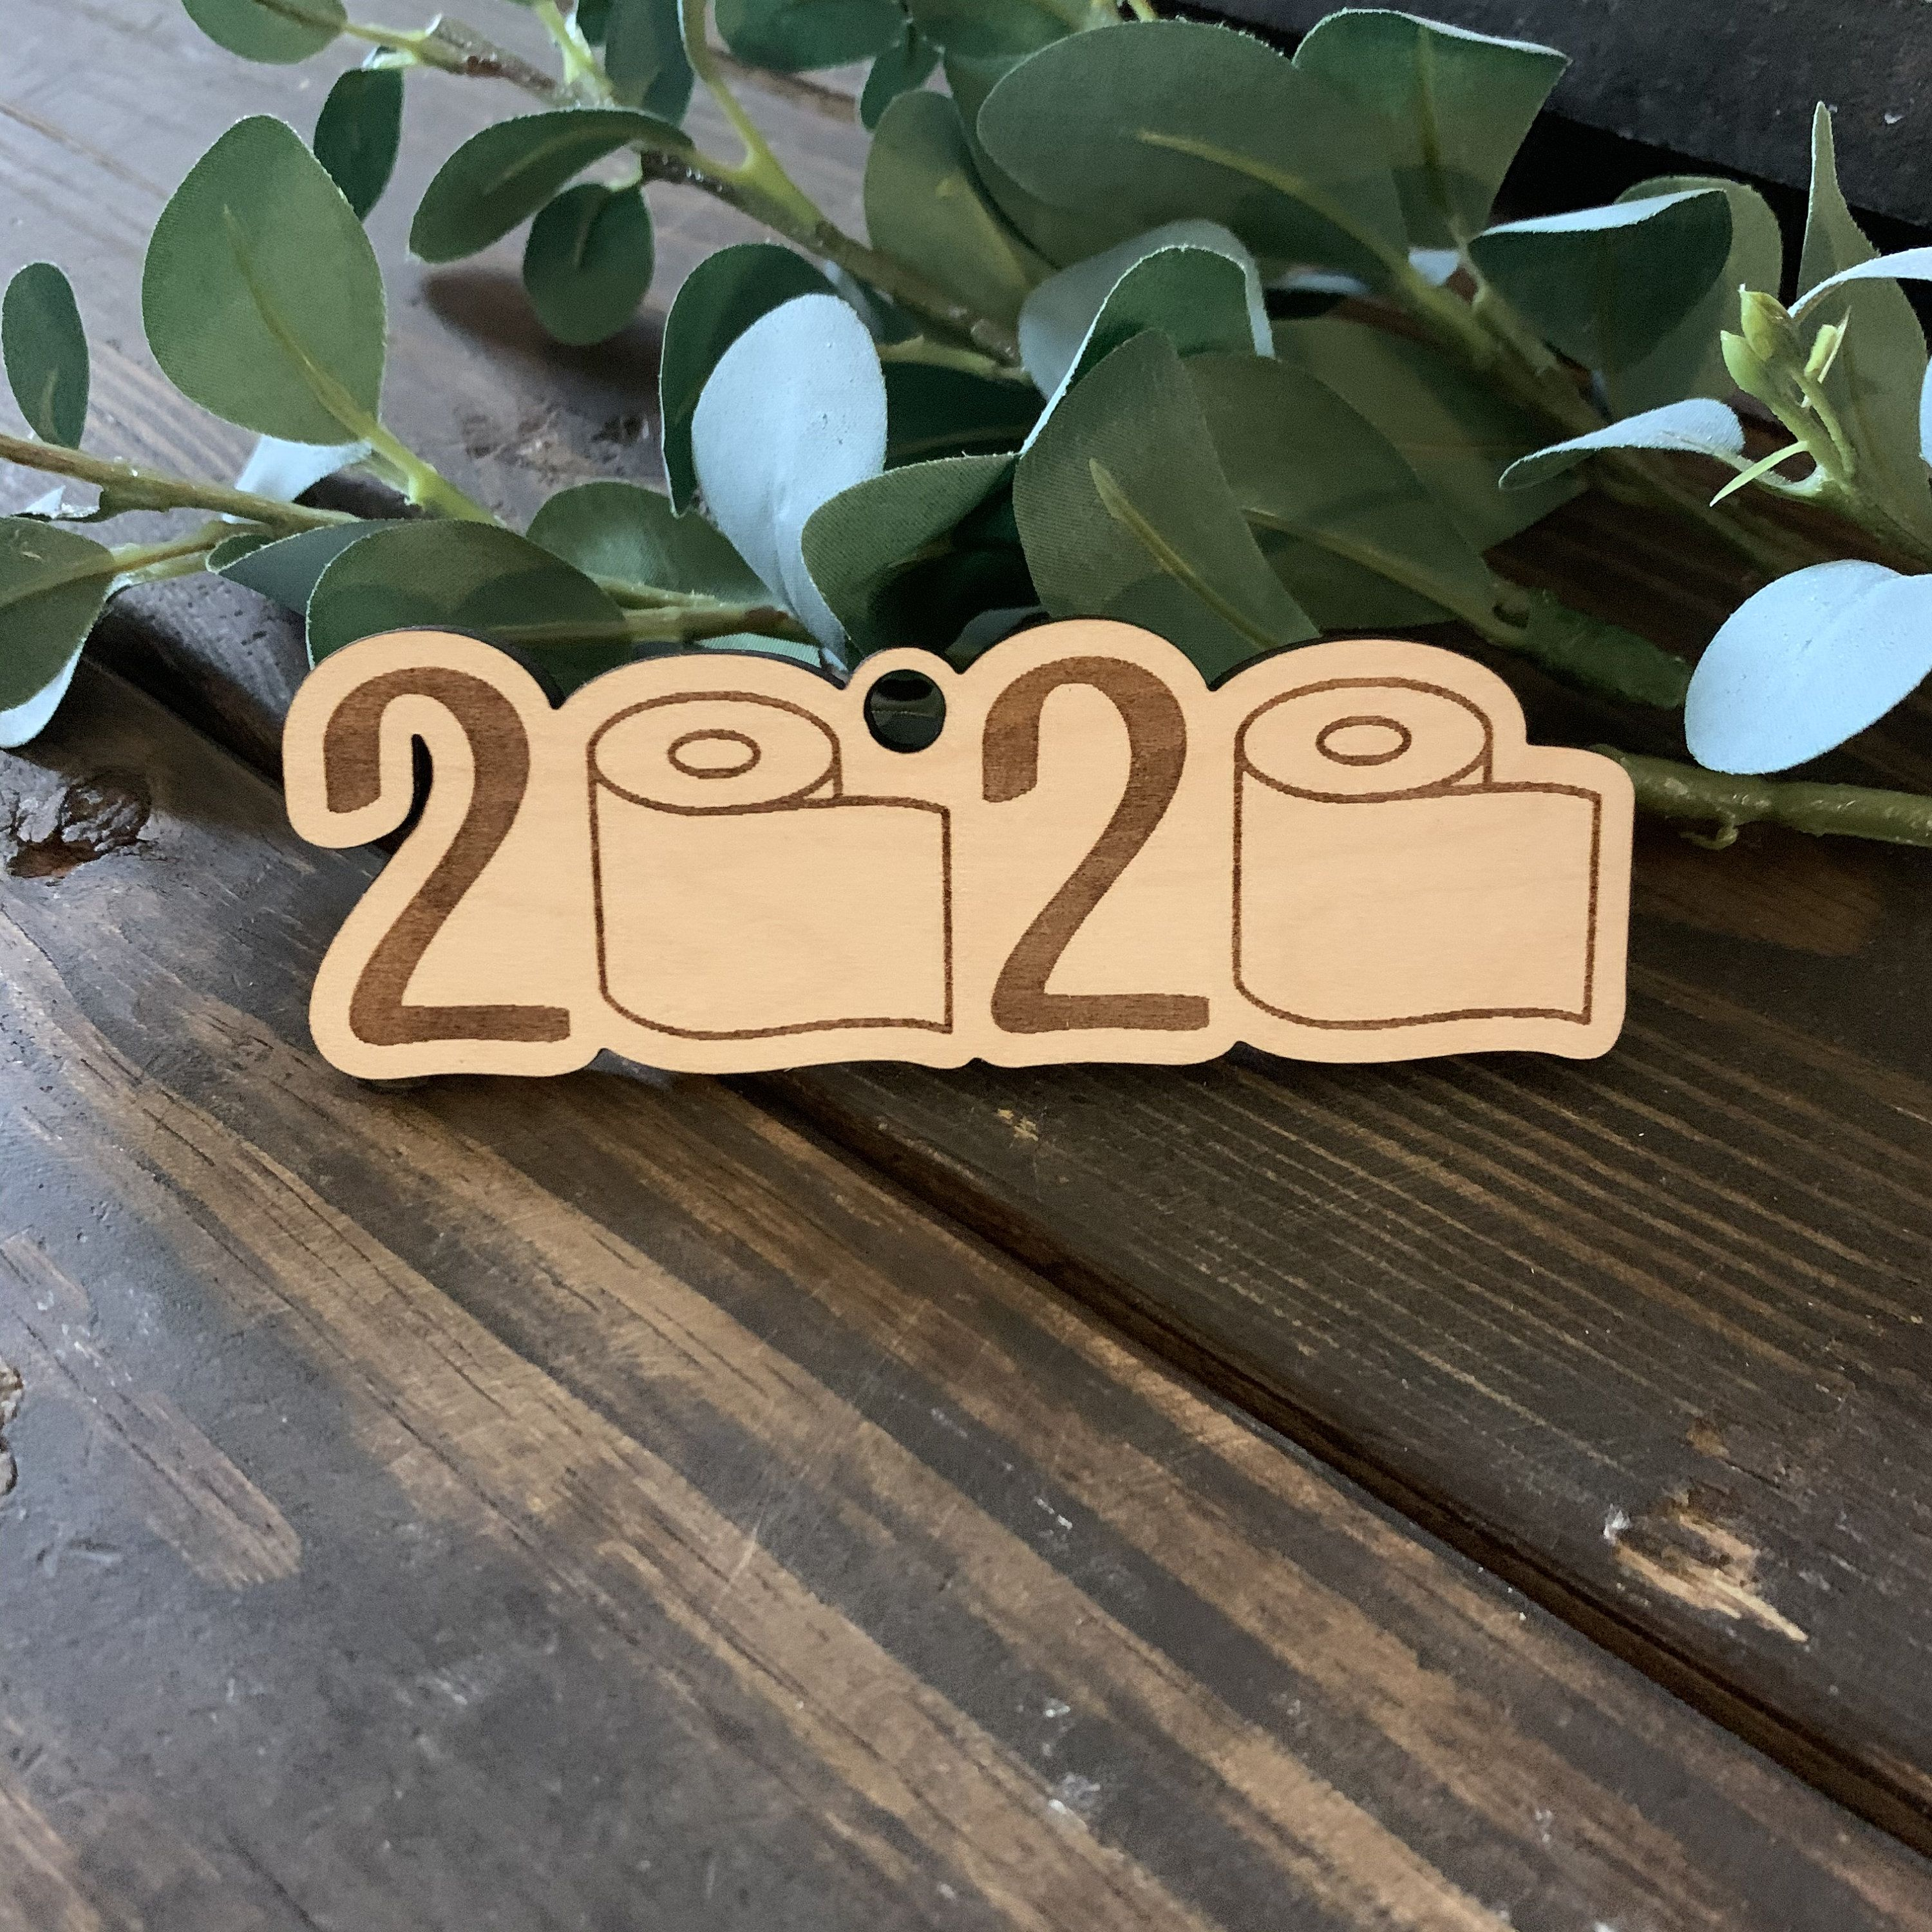 I Survived The Great Toilet Paper Hoard 2020 Ornament